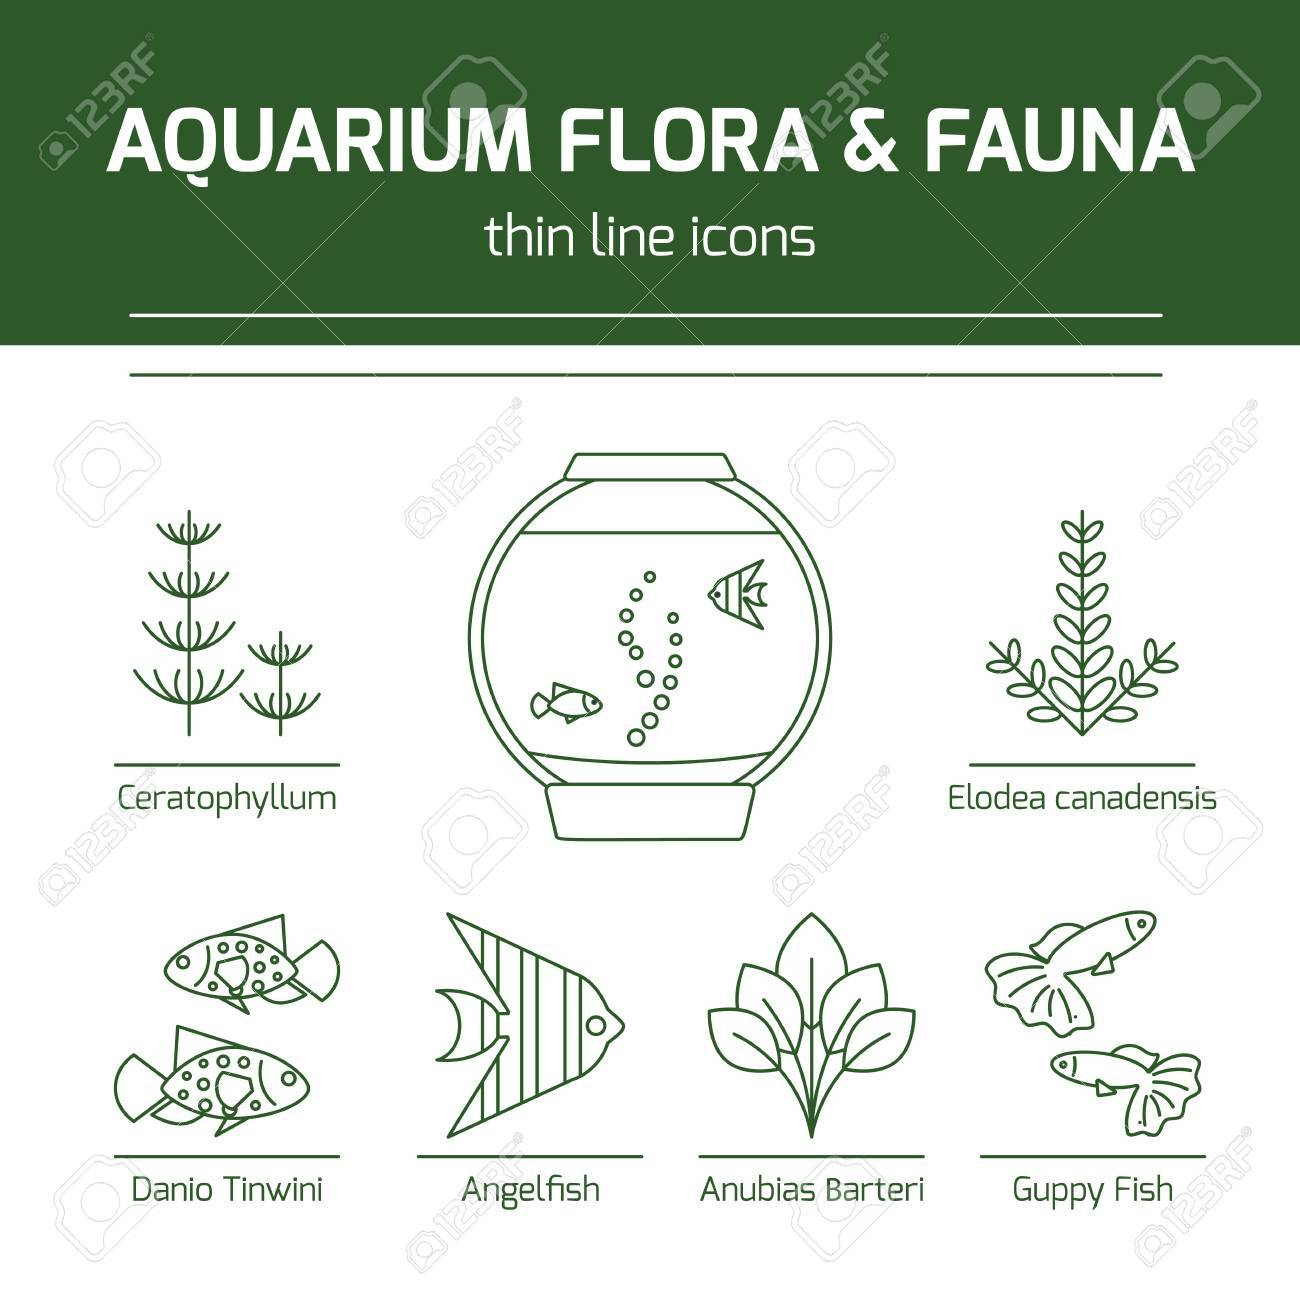 Thin line vector icons aquarium flora and fauna royalty free thin line vector icons aquarium flora and fauna stock vector 81714225 pooptronica